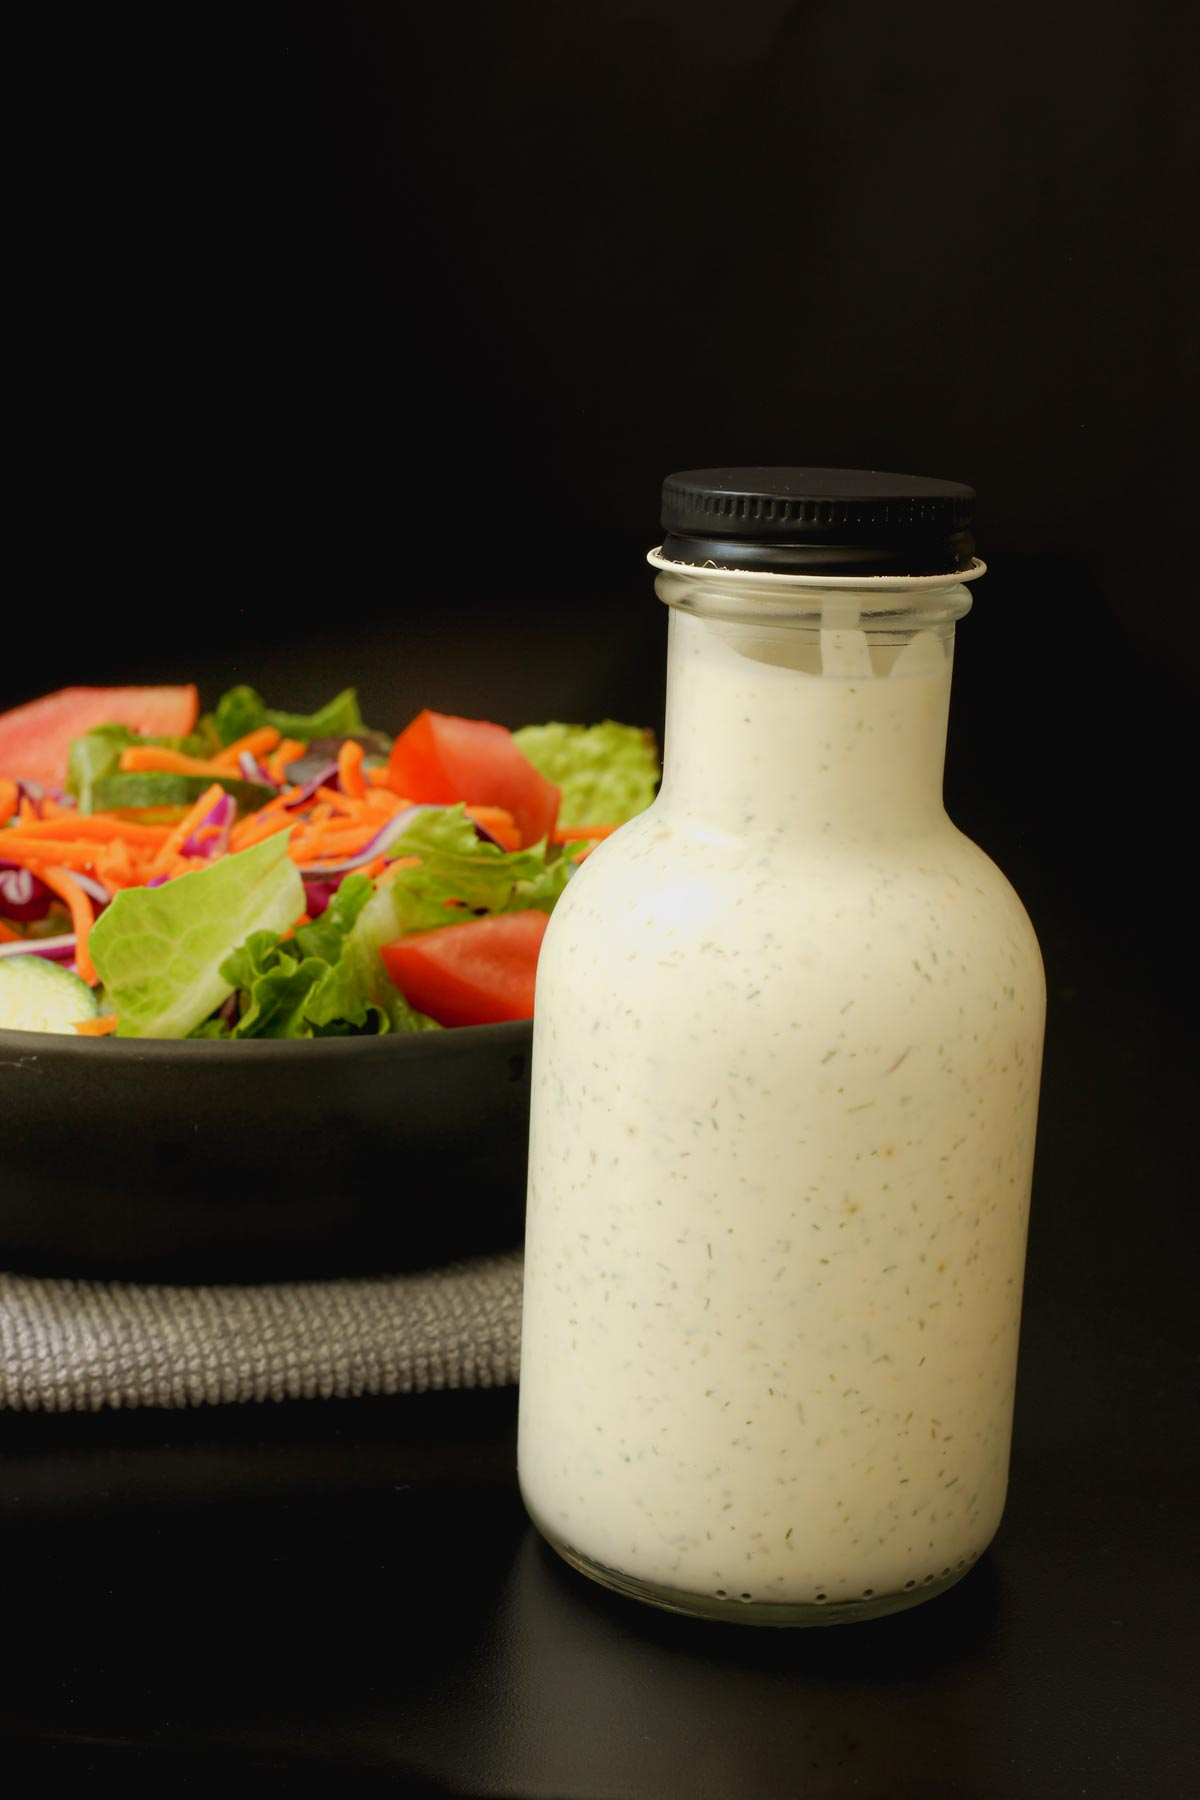 closed bottle of buttermilk dressing next to salad in a black bowl.